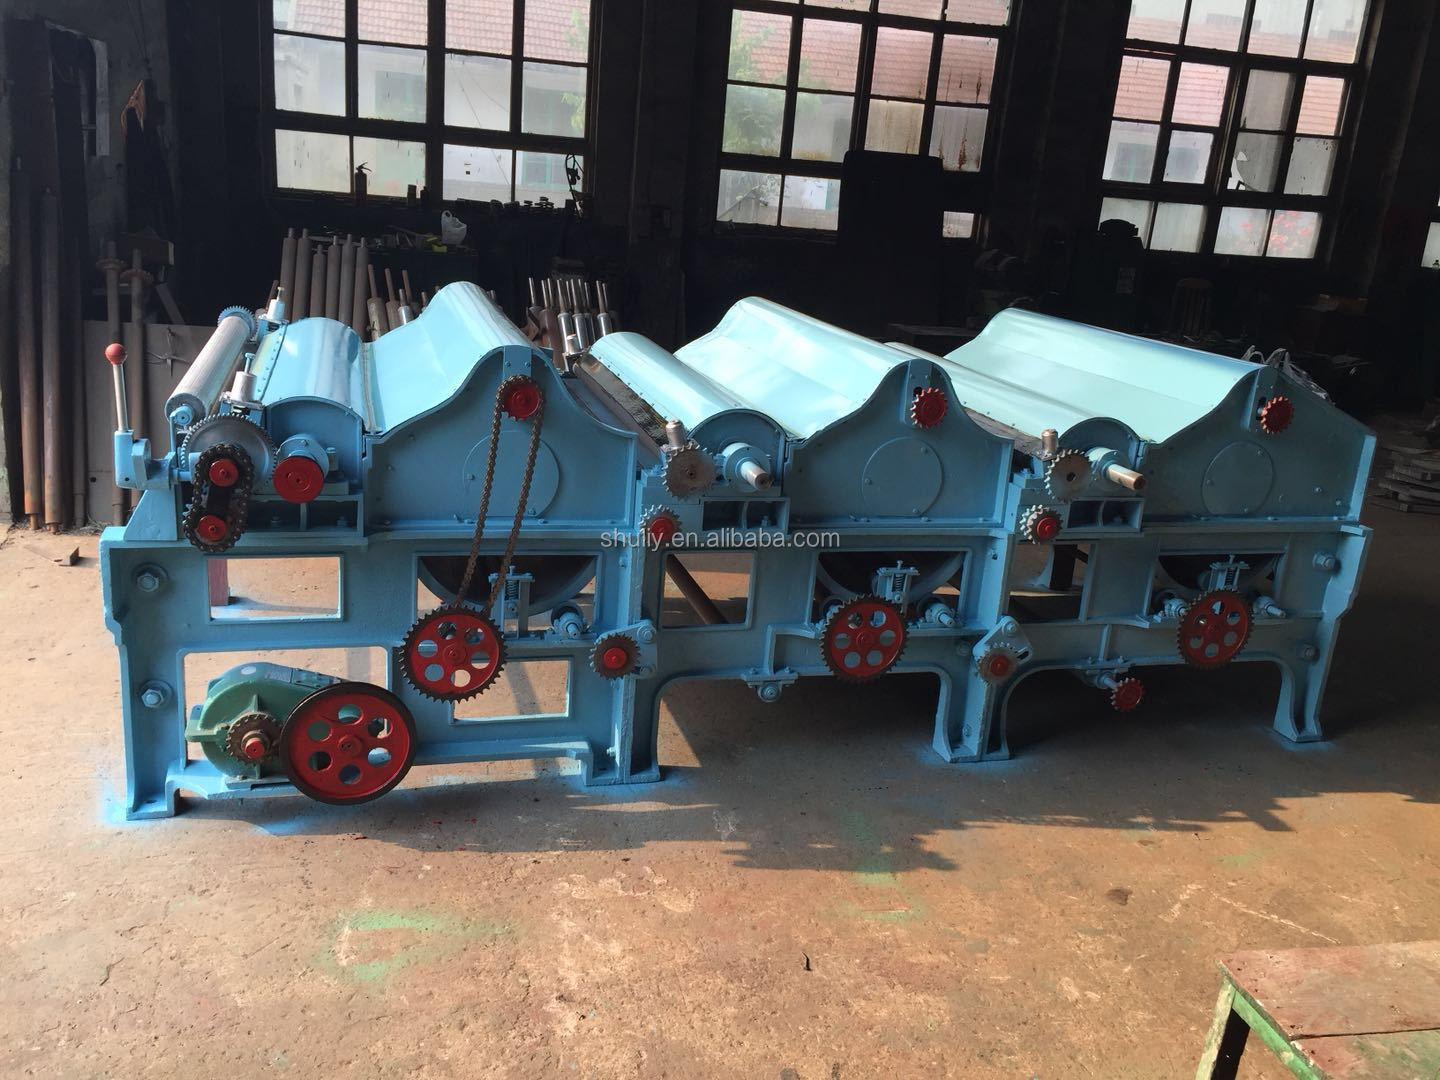 Waste cotton cloth bushing and cleaning machine textile fiber process and recycle machine